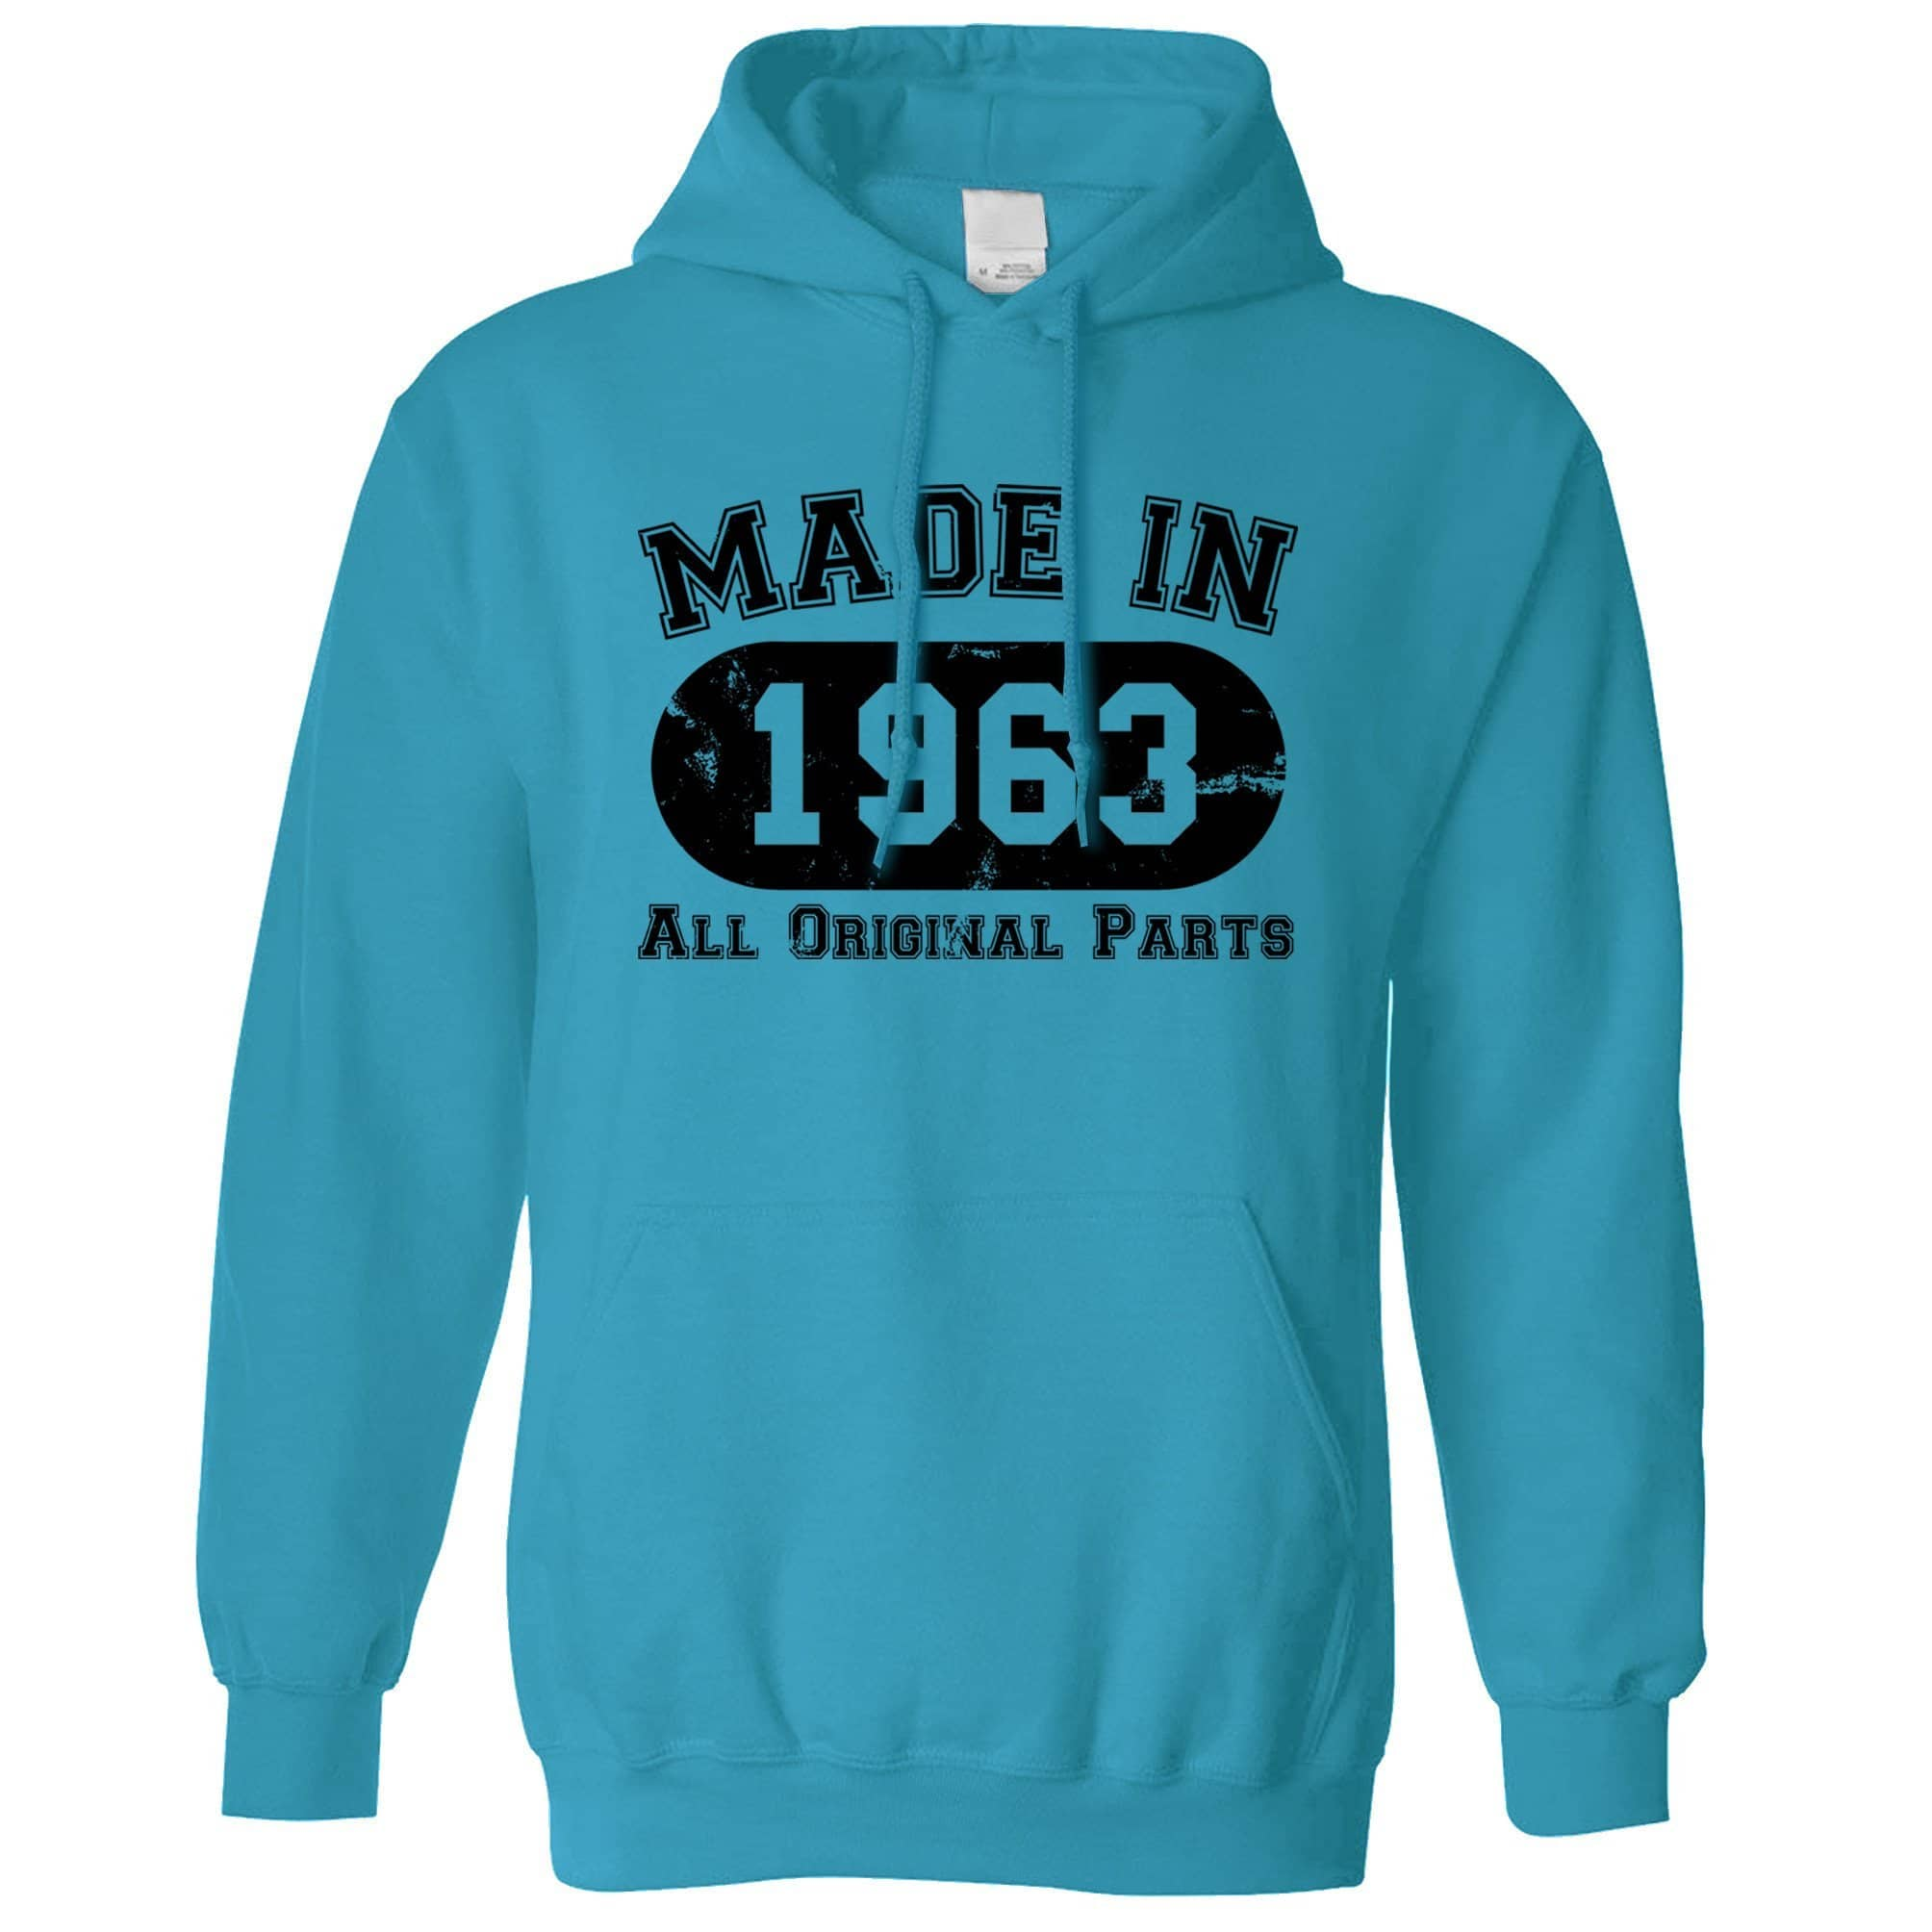 Made in 1963 All Original Parts Hoodie [Distressed]